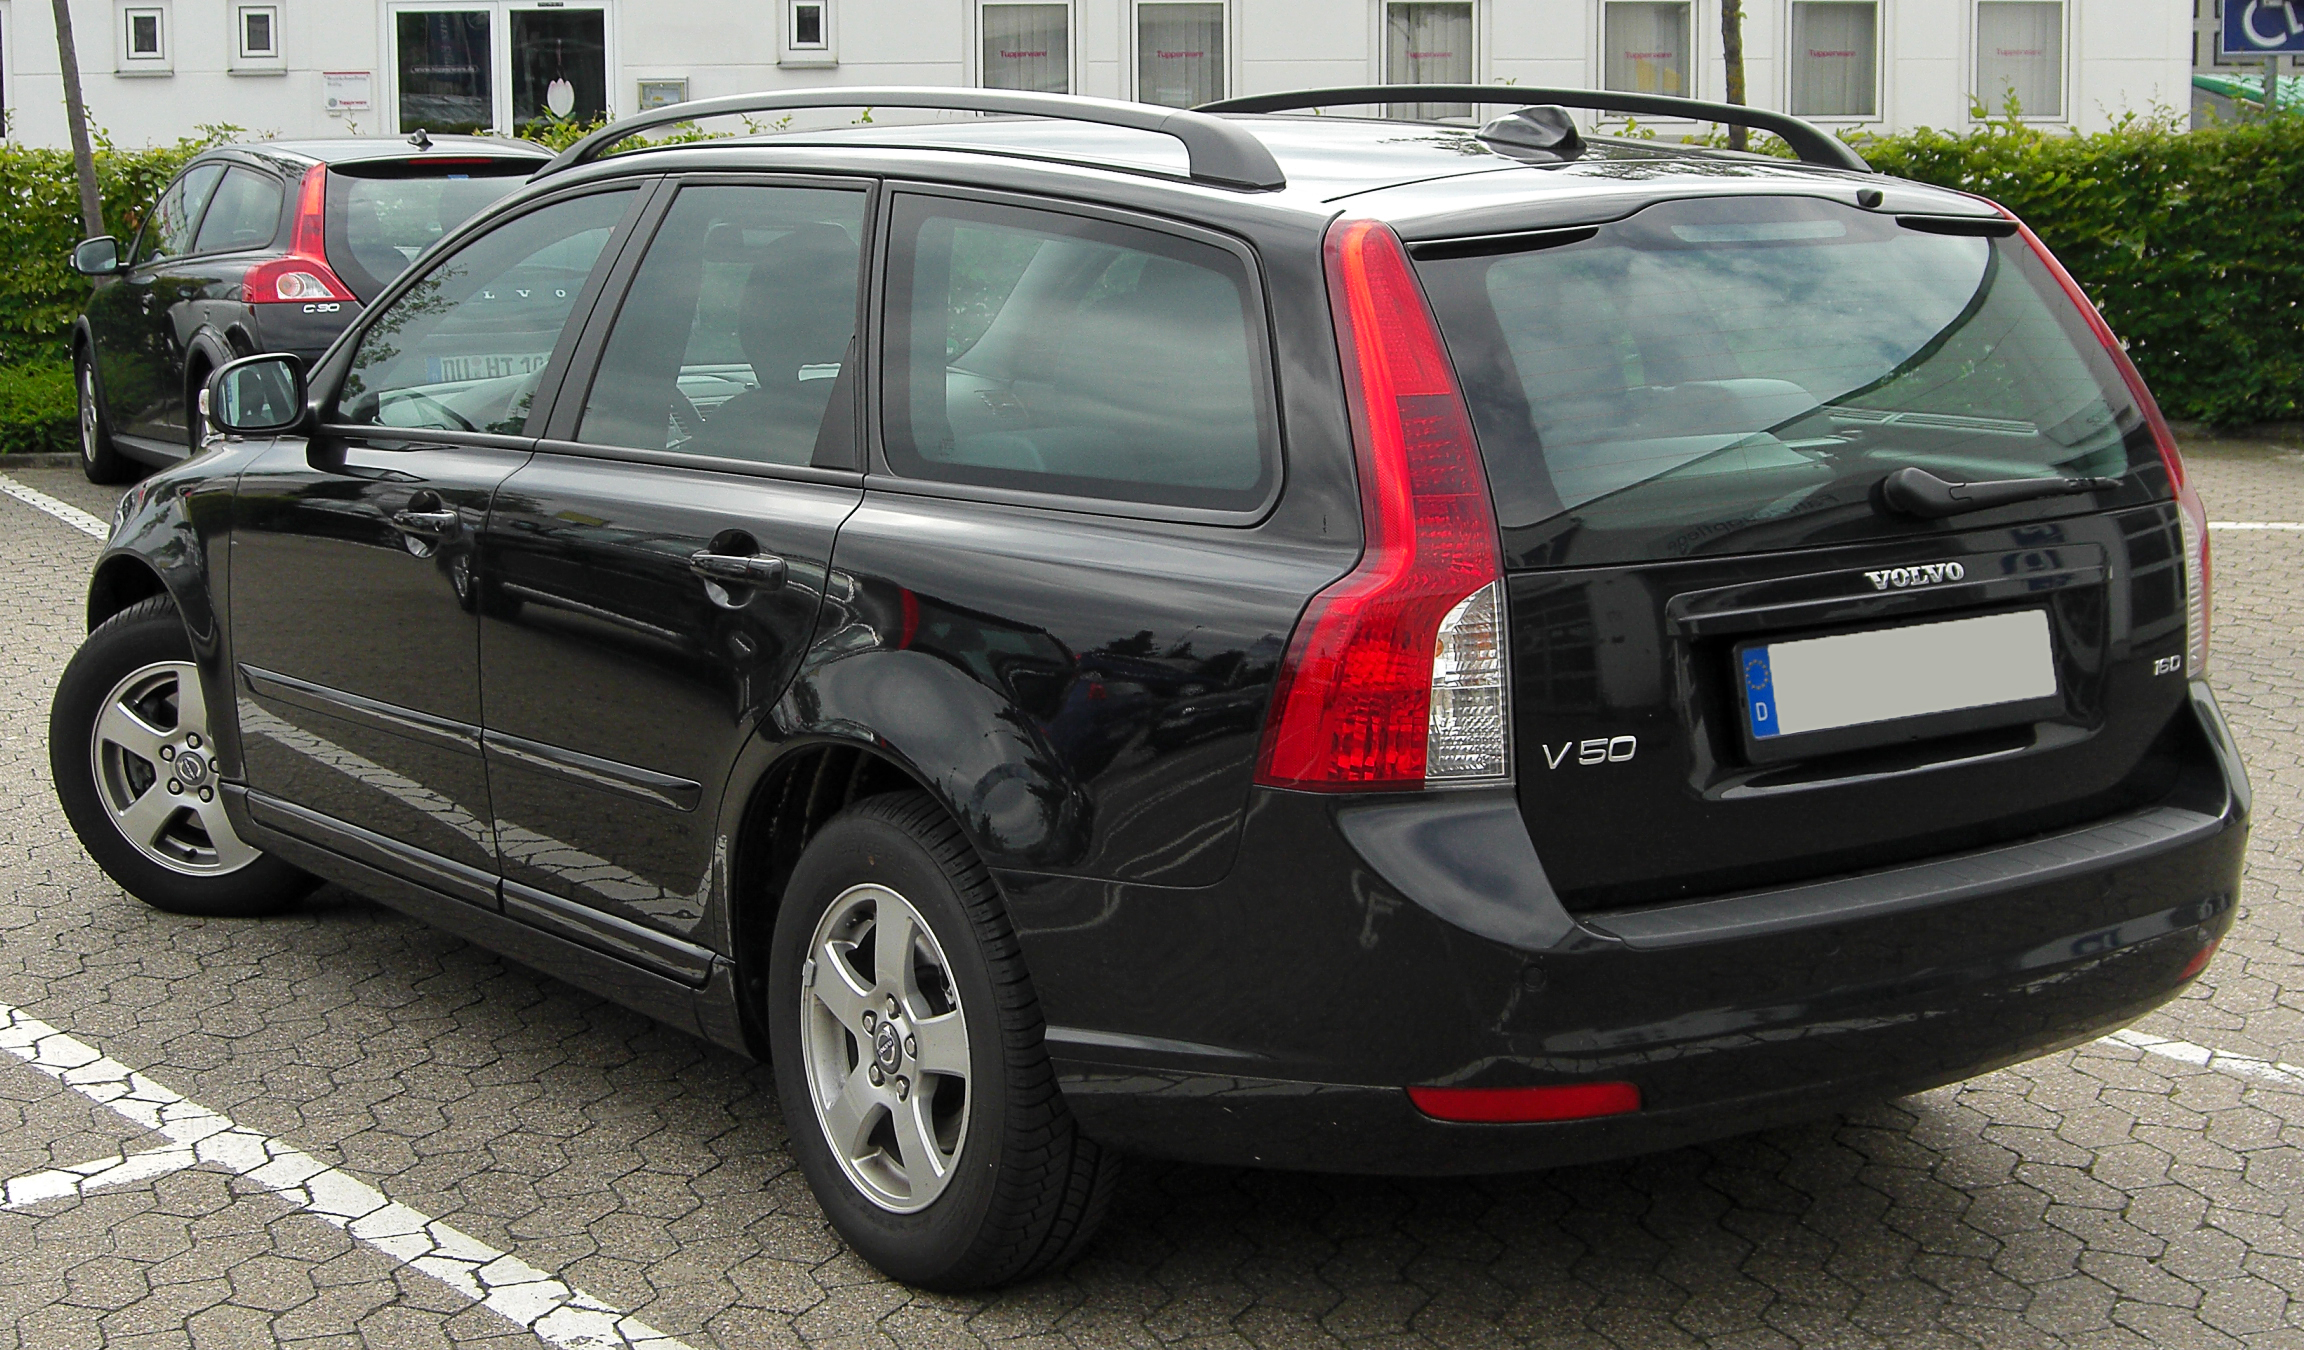 File Volvo V50 1 6 D Facelift Rear 20100731 Jpg